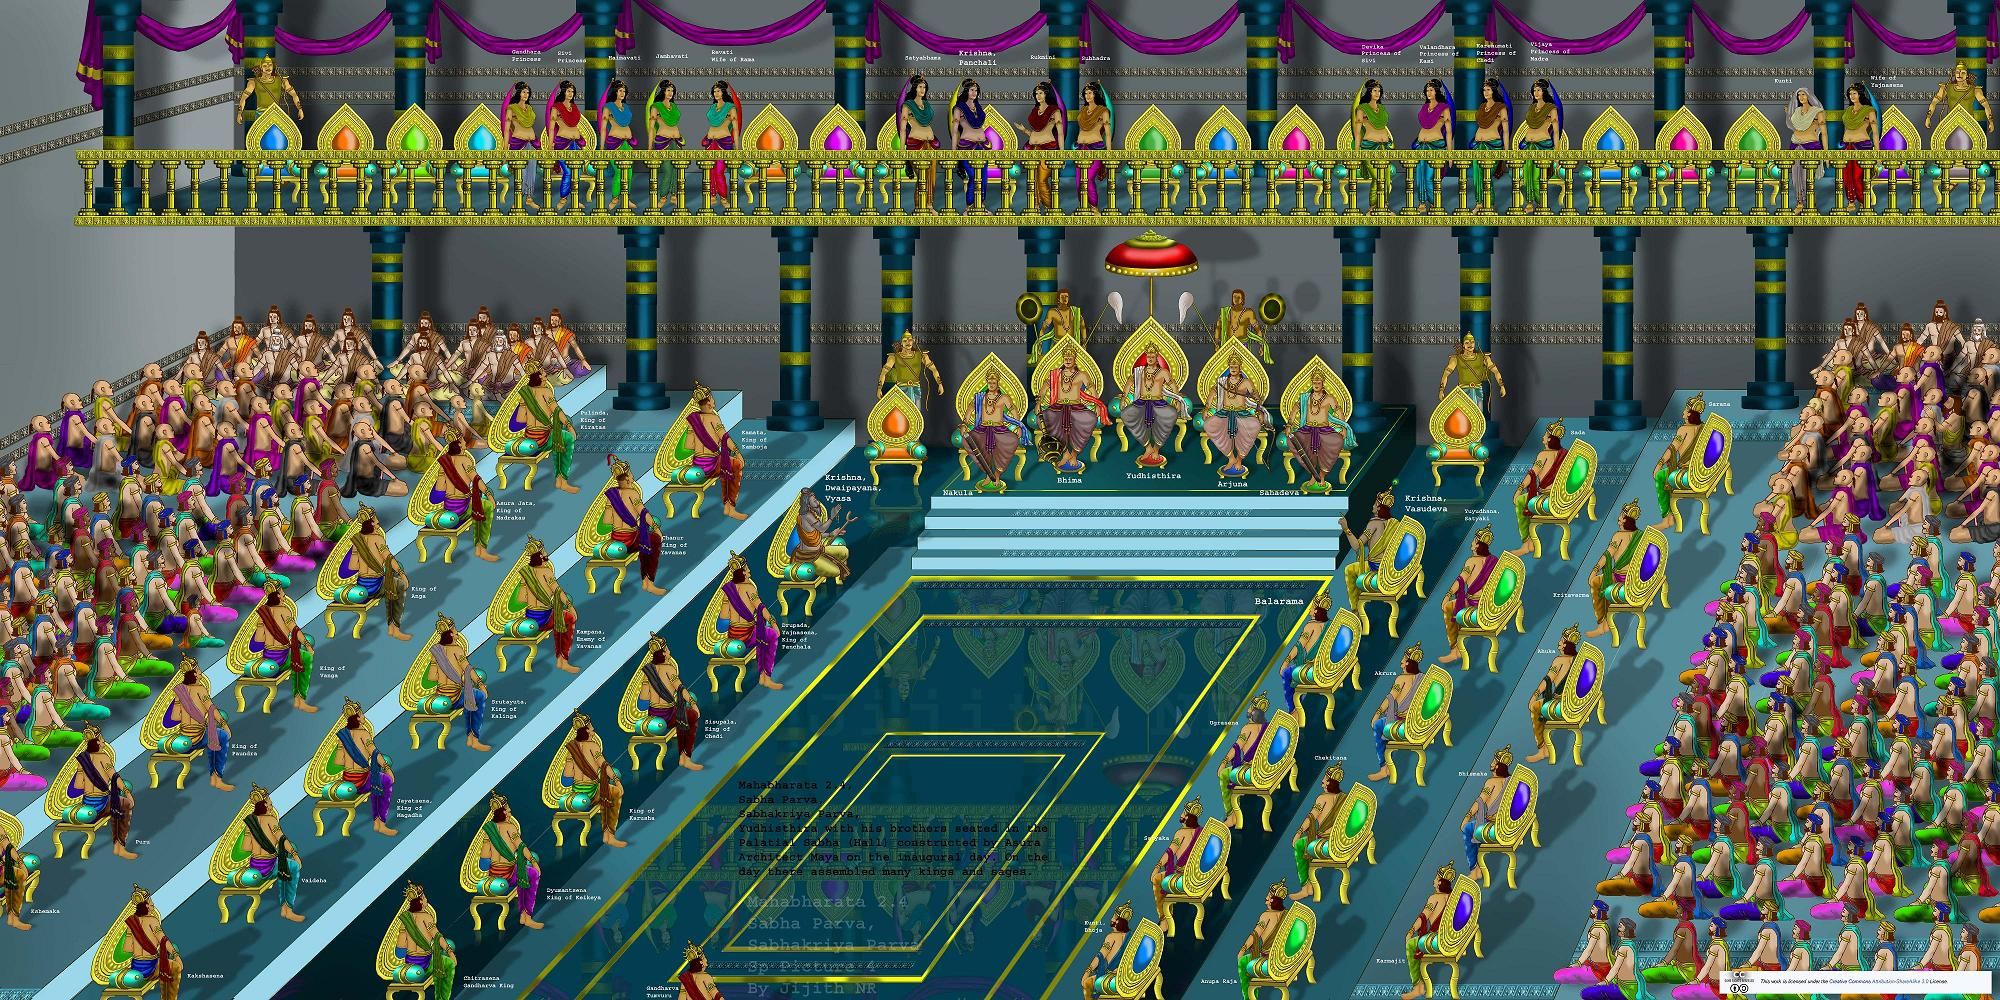 Initiation_of_Maya_Sabha.jpg